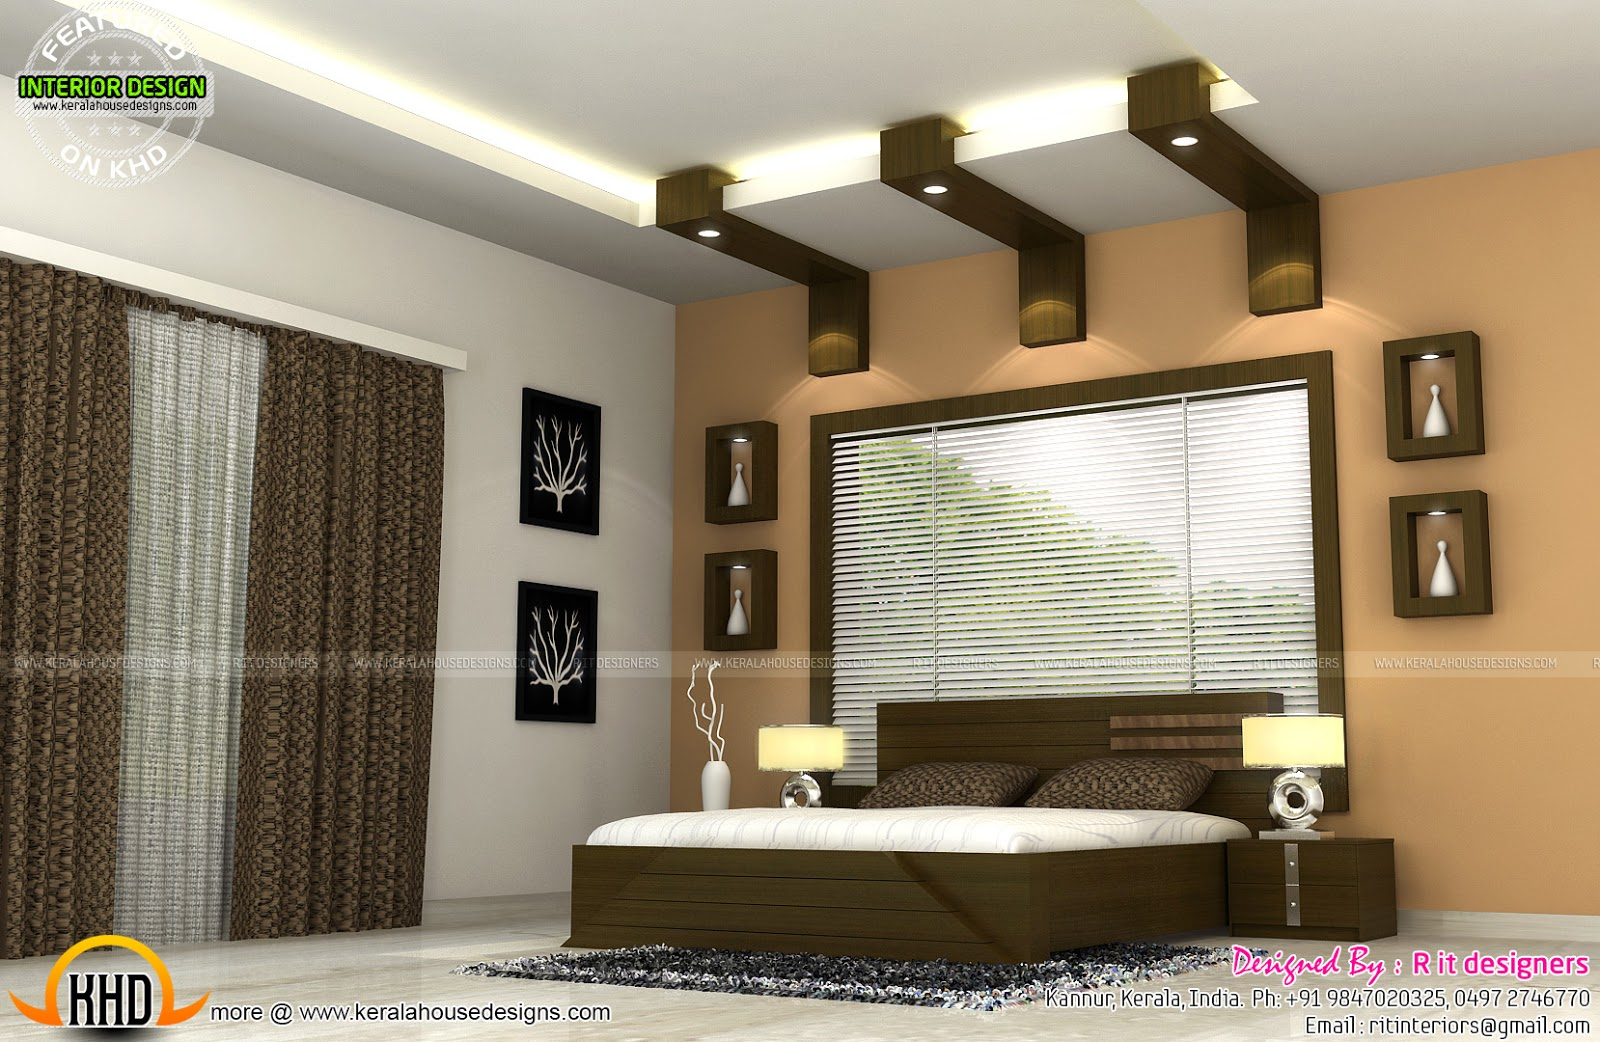 Interiors of bedrooms and kitchen kerala home design and for Home plans with interior photos